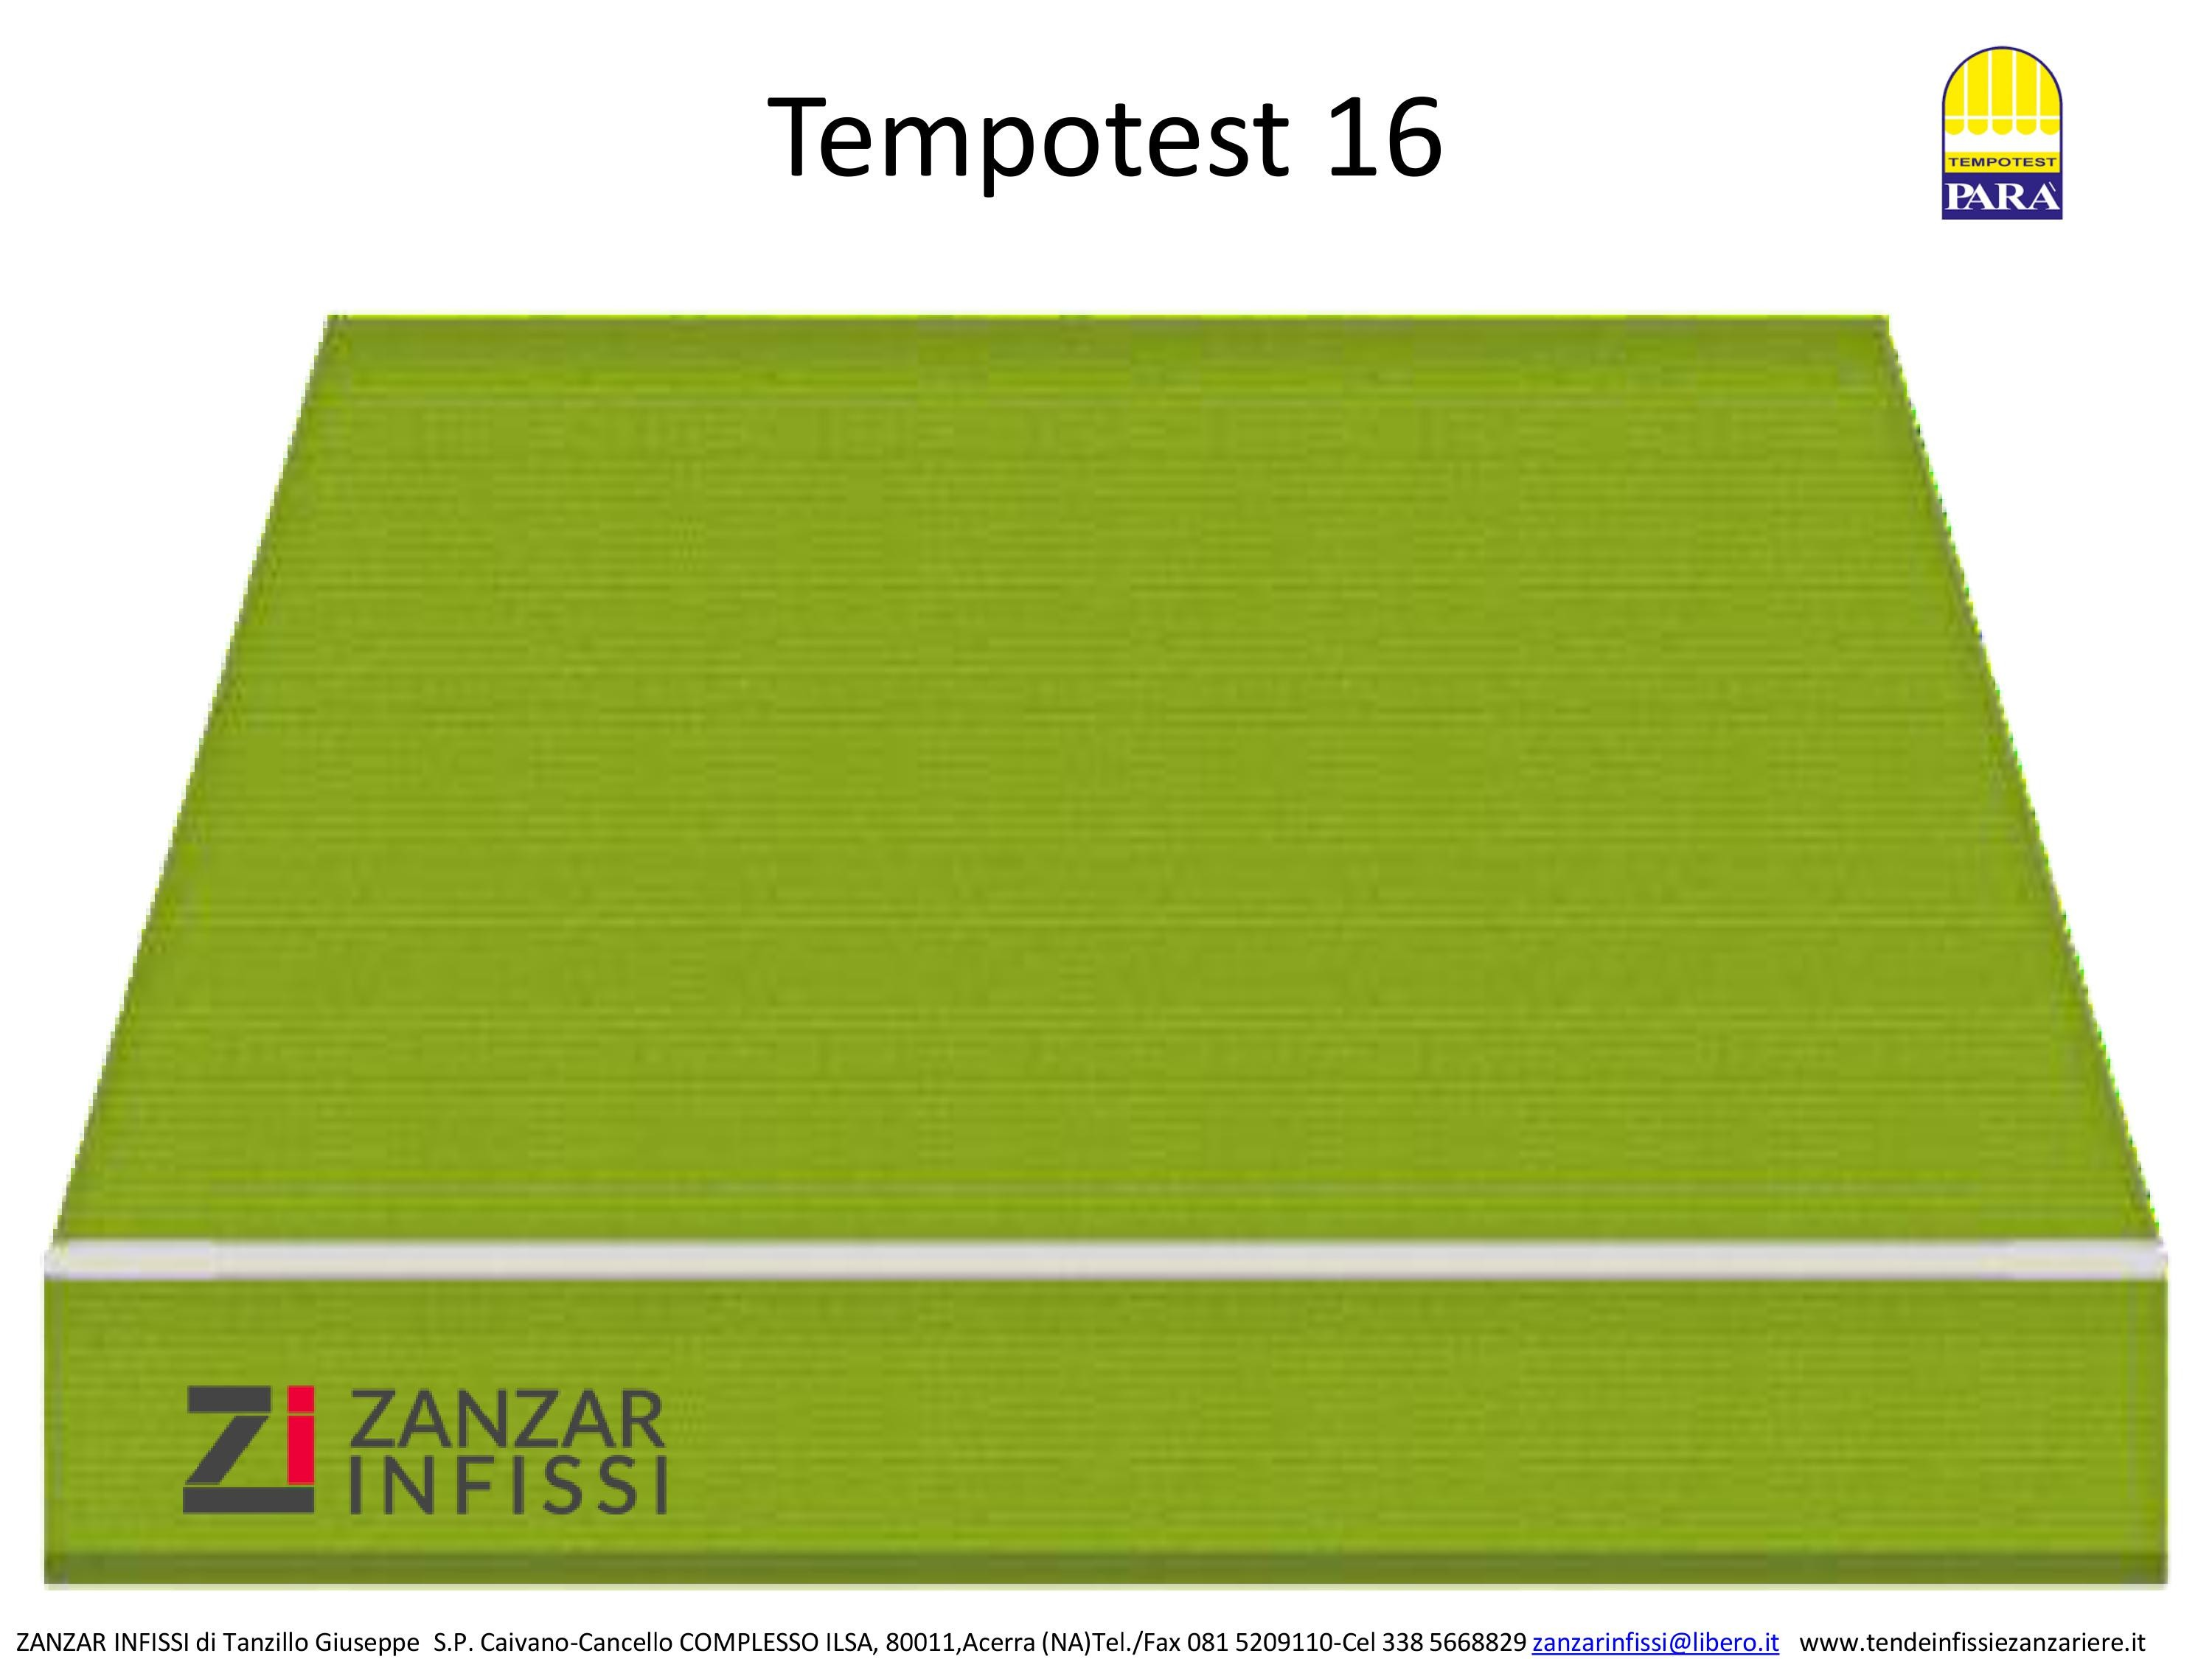 Tempotest 16